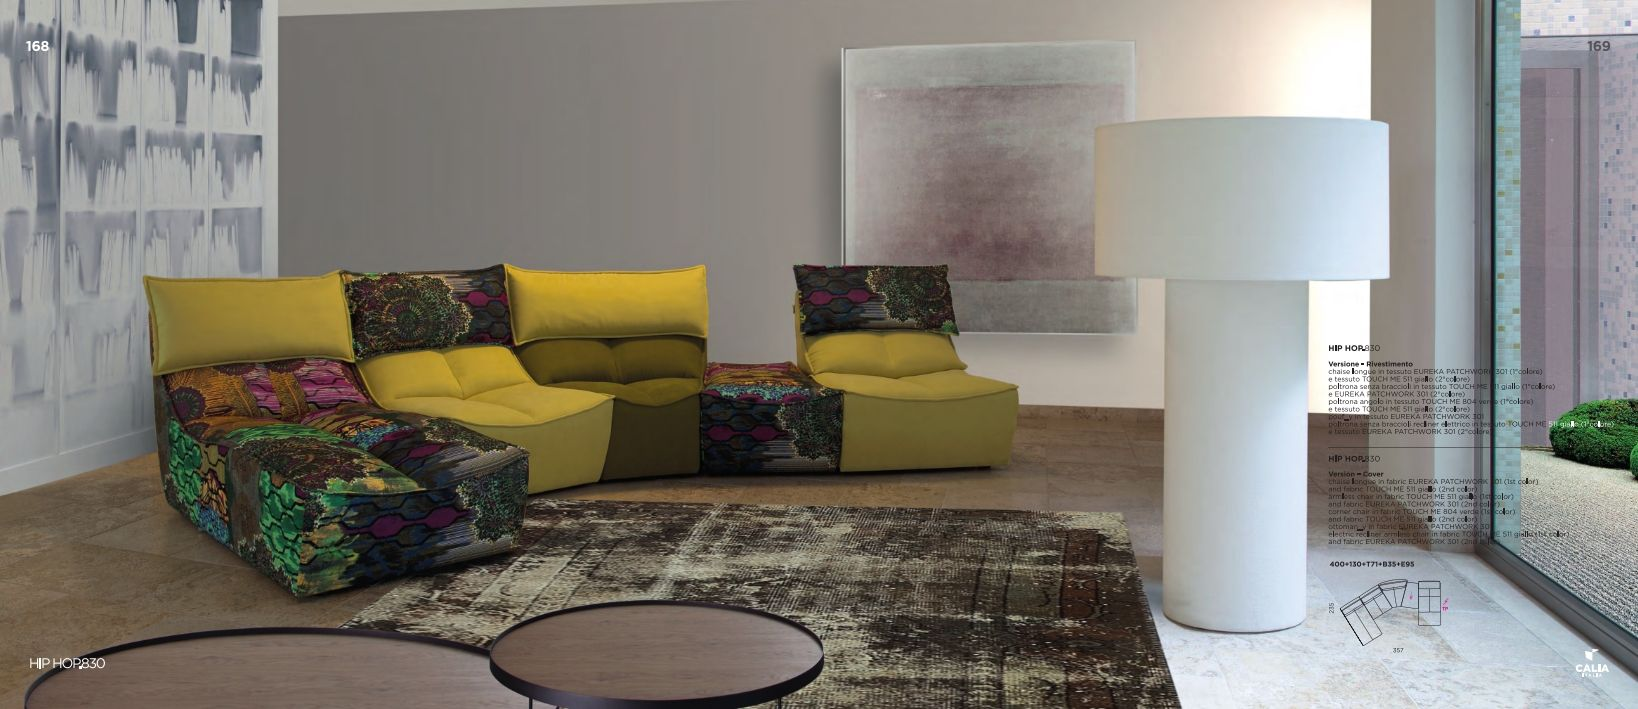 Sectional Sofas - Sectional Sofa Calia Italia HIP HOP 830 ...